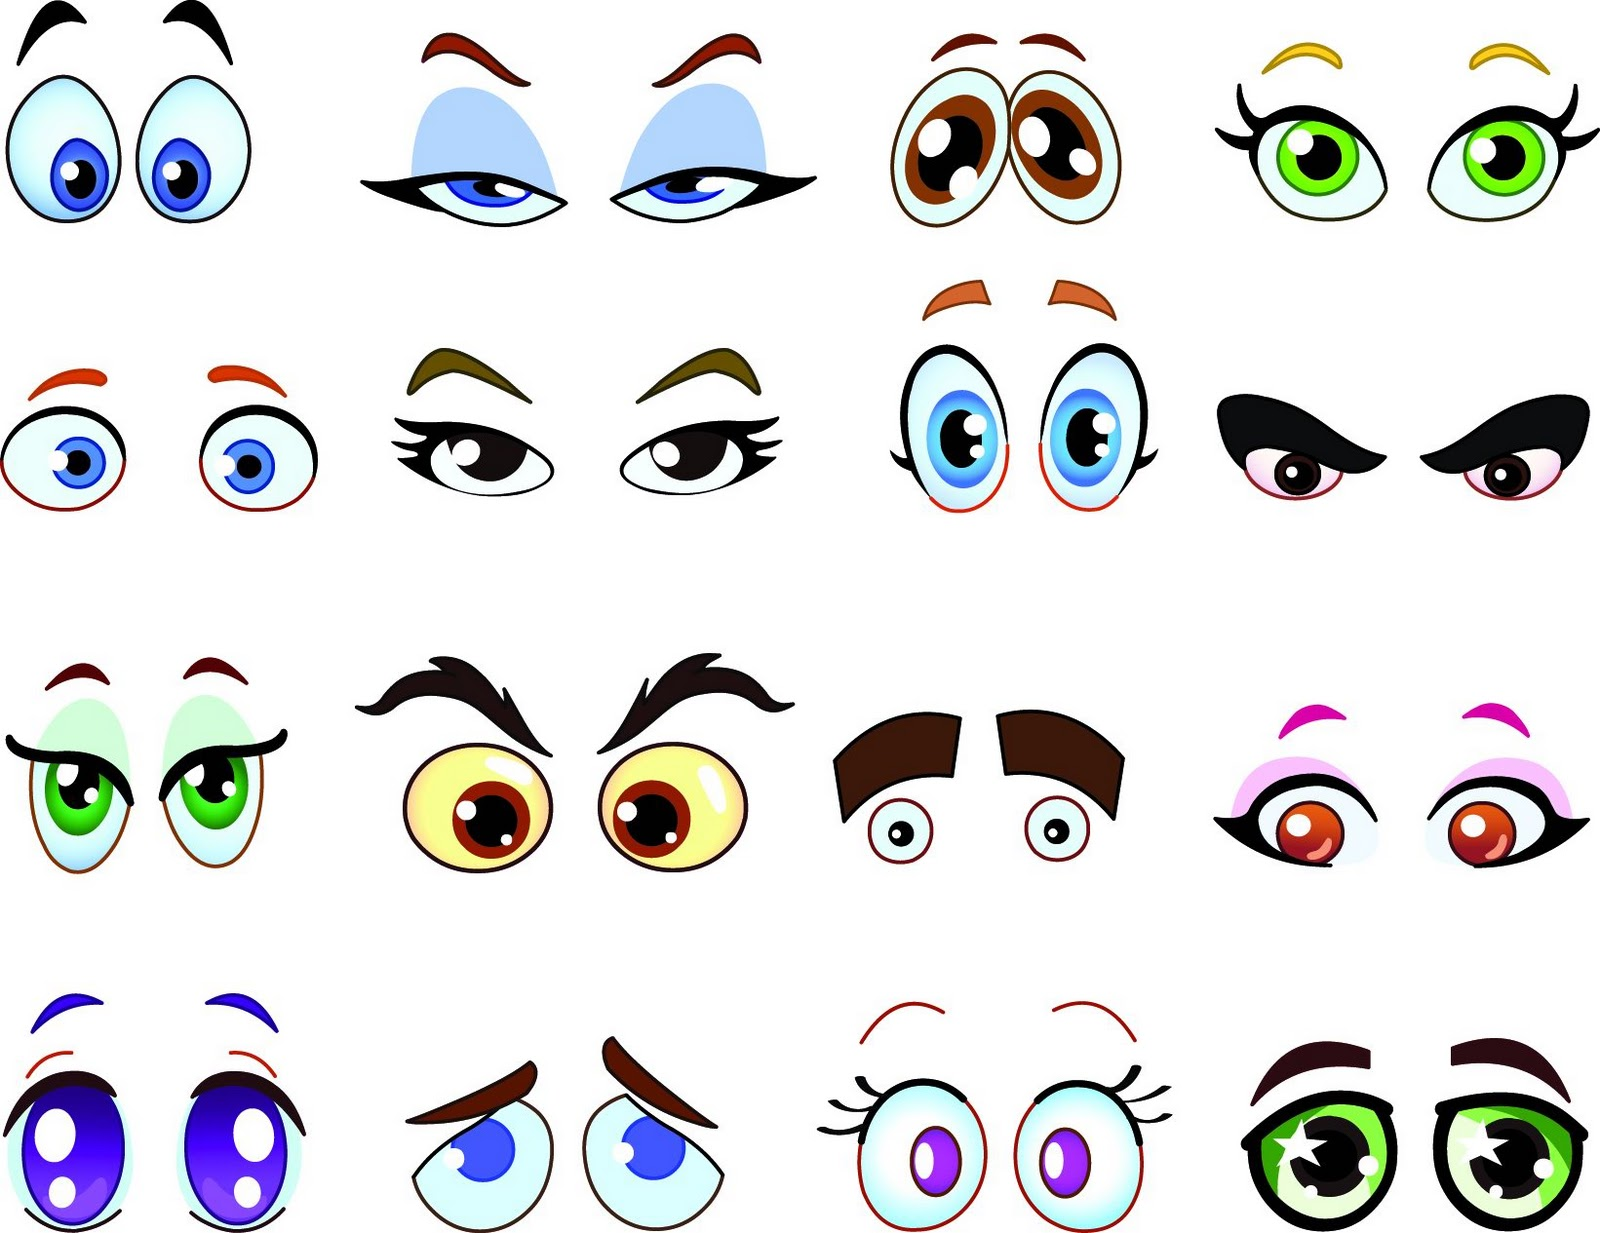 Happy Delicious Stuff  Clip Art   Cartoon Eyes